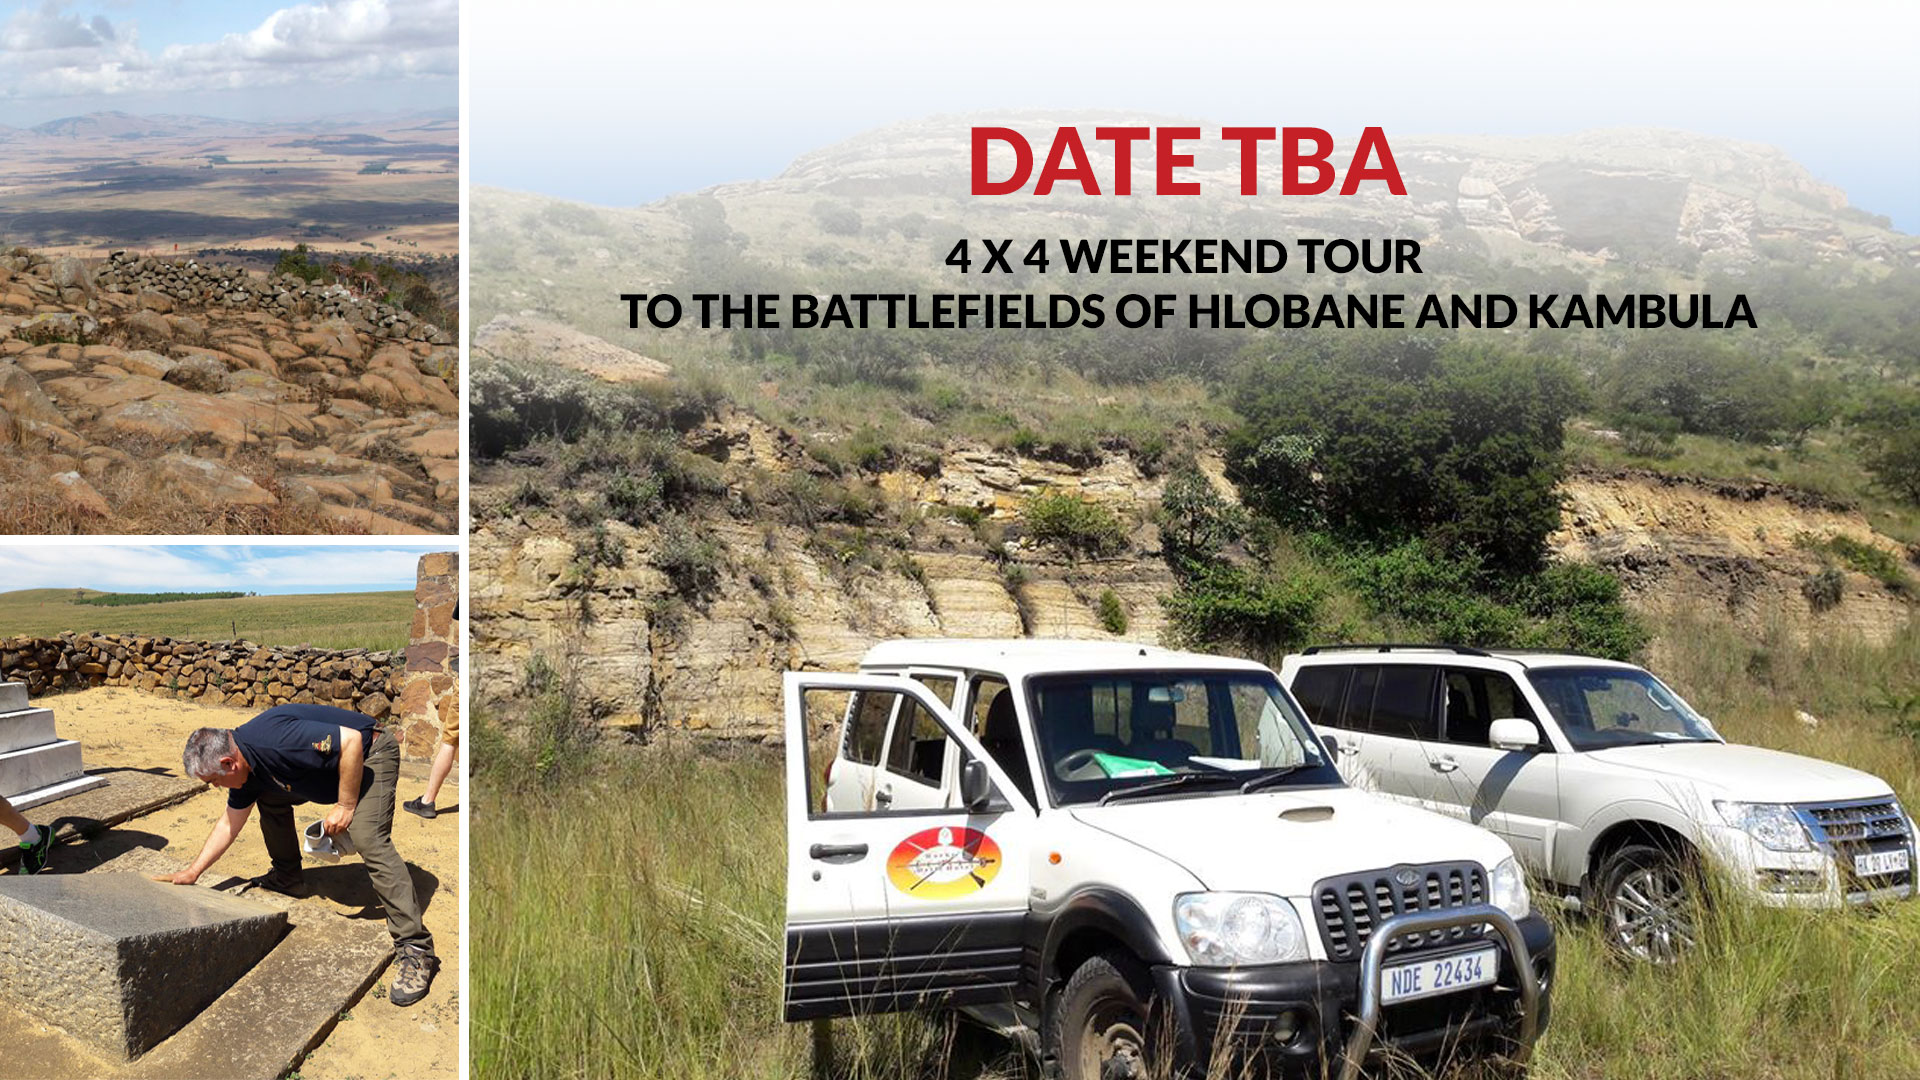 A special anniversary 4 x 4 weekend tour to the battlefields of Hlobane and Kambula